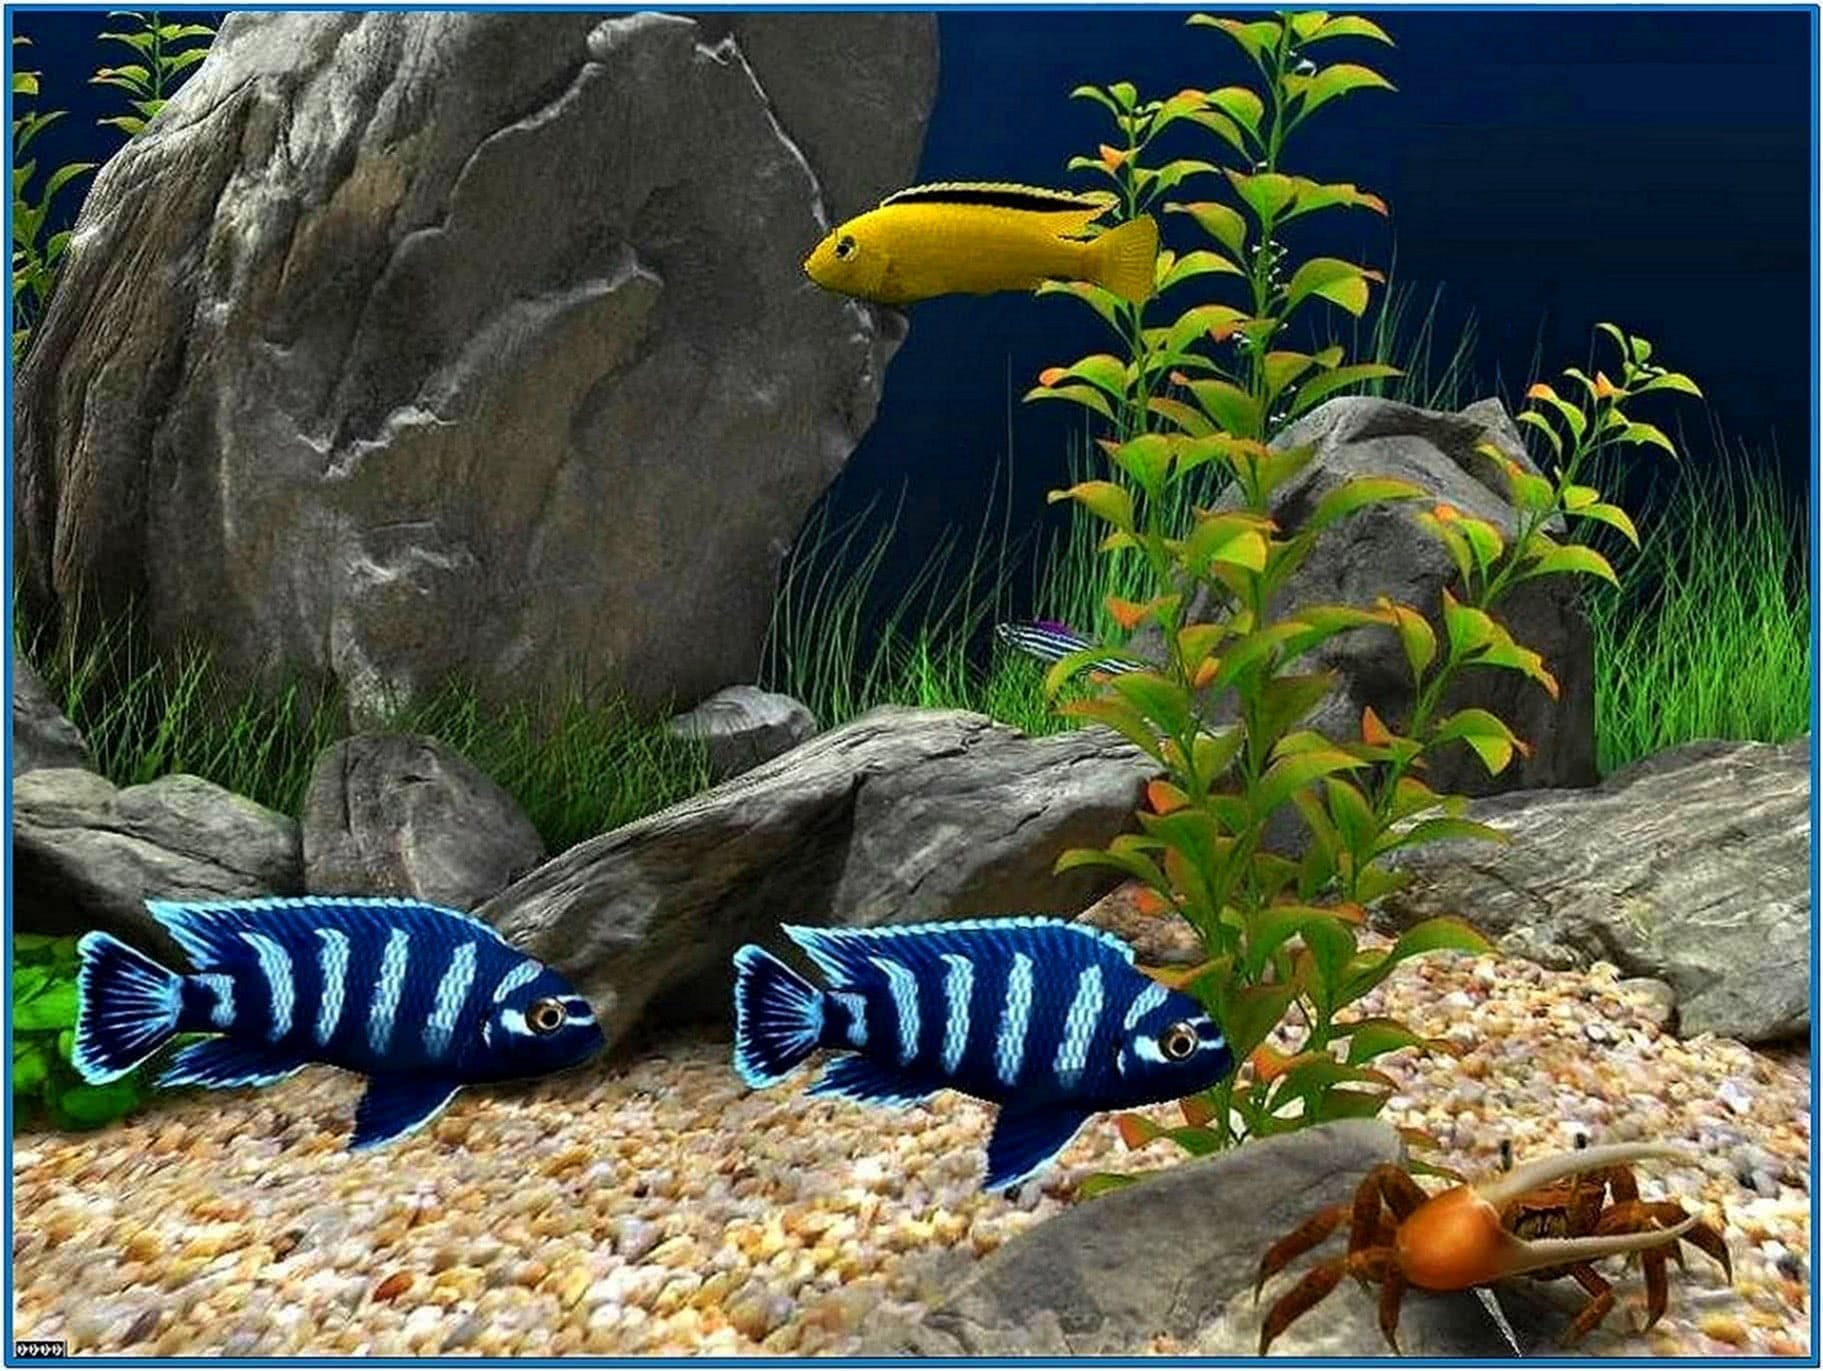 Dream Aquarium Screensaver 2020